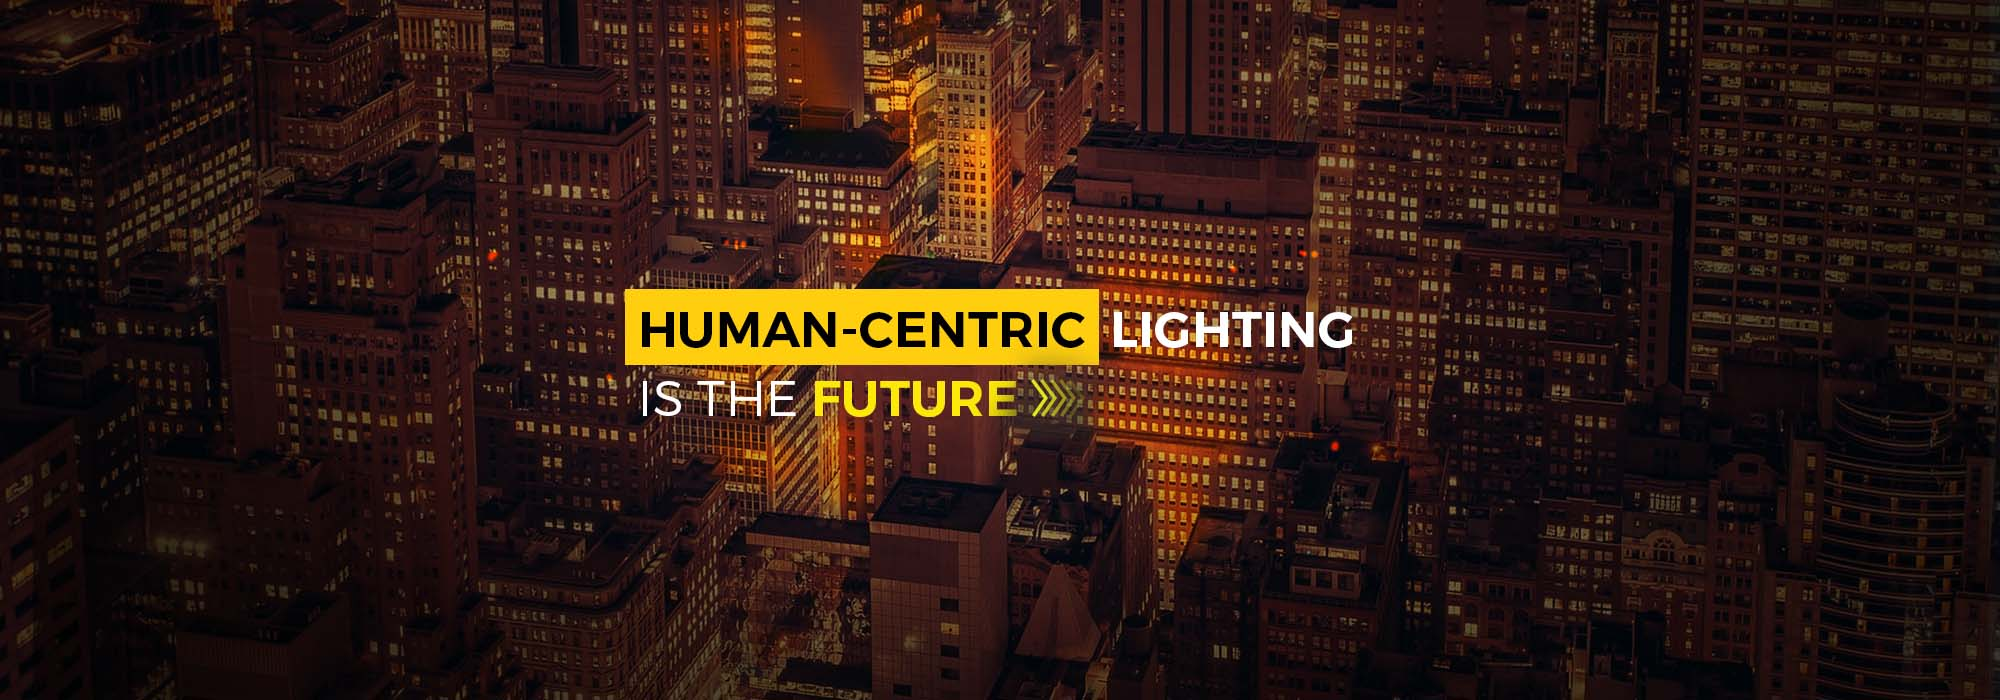 Future of lighting is human-centric